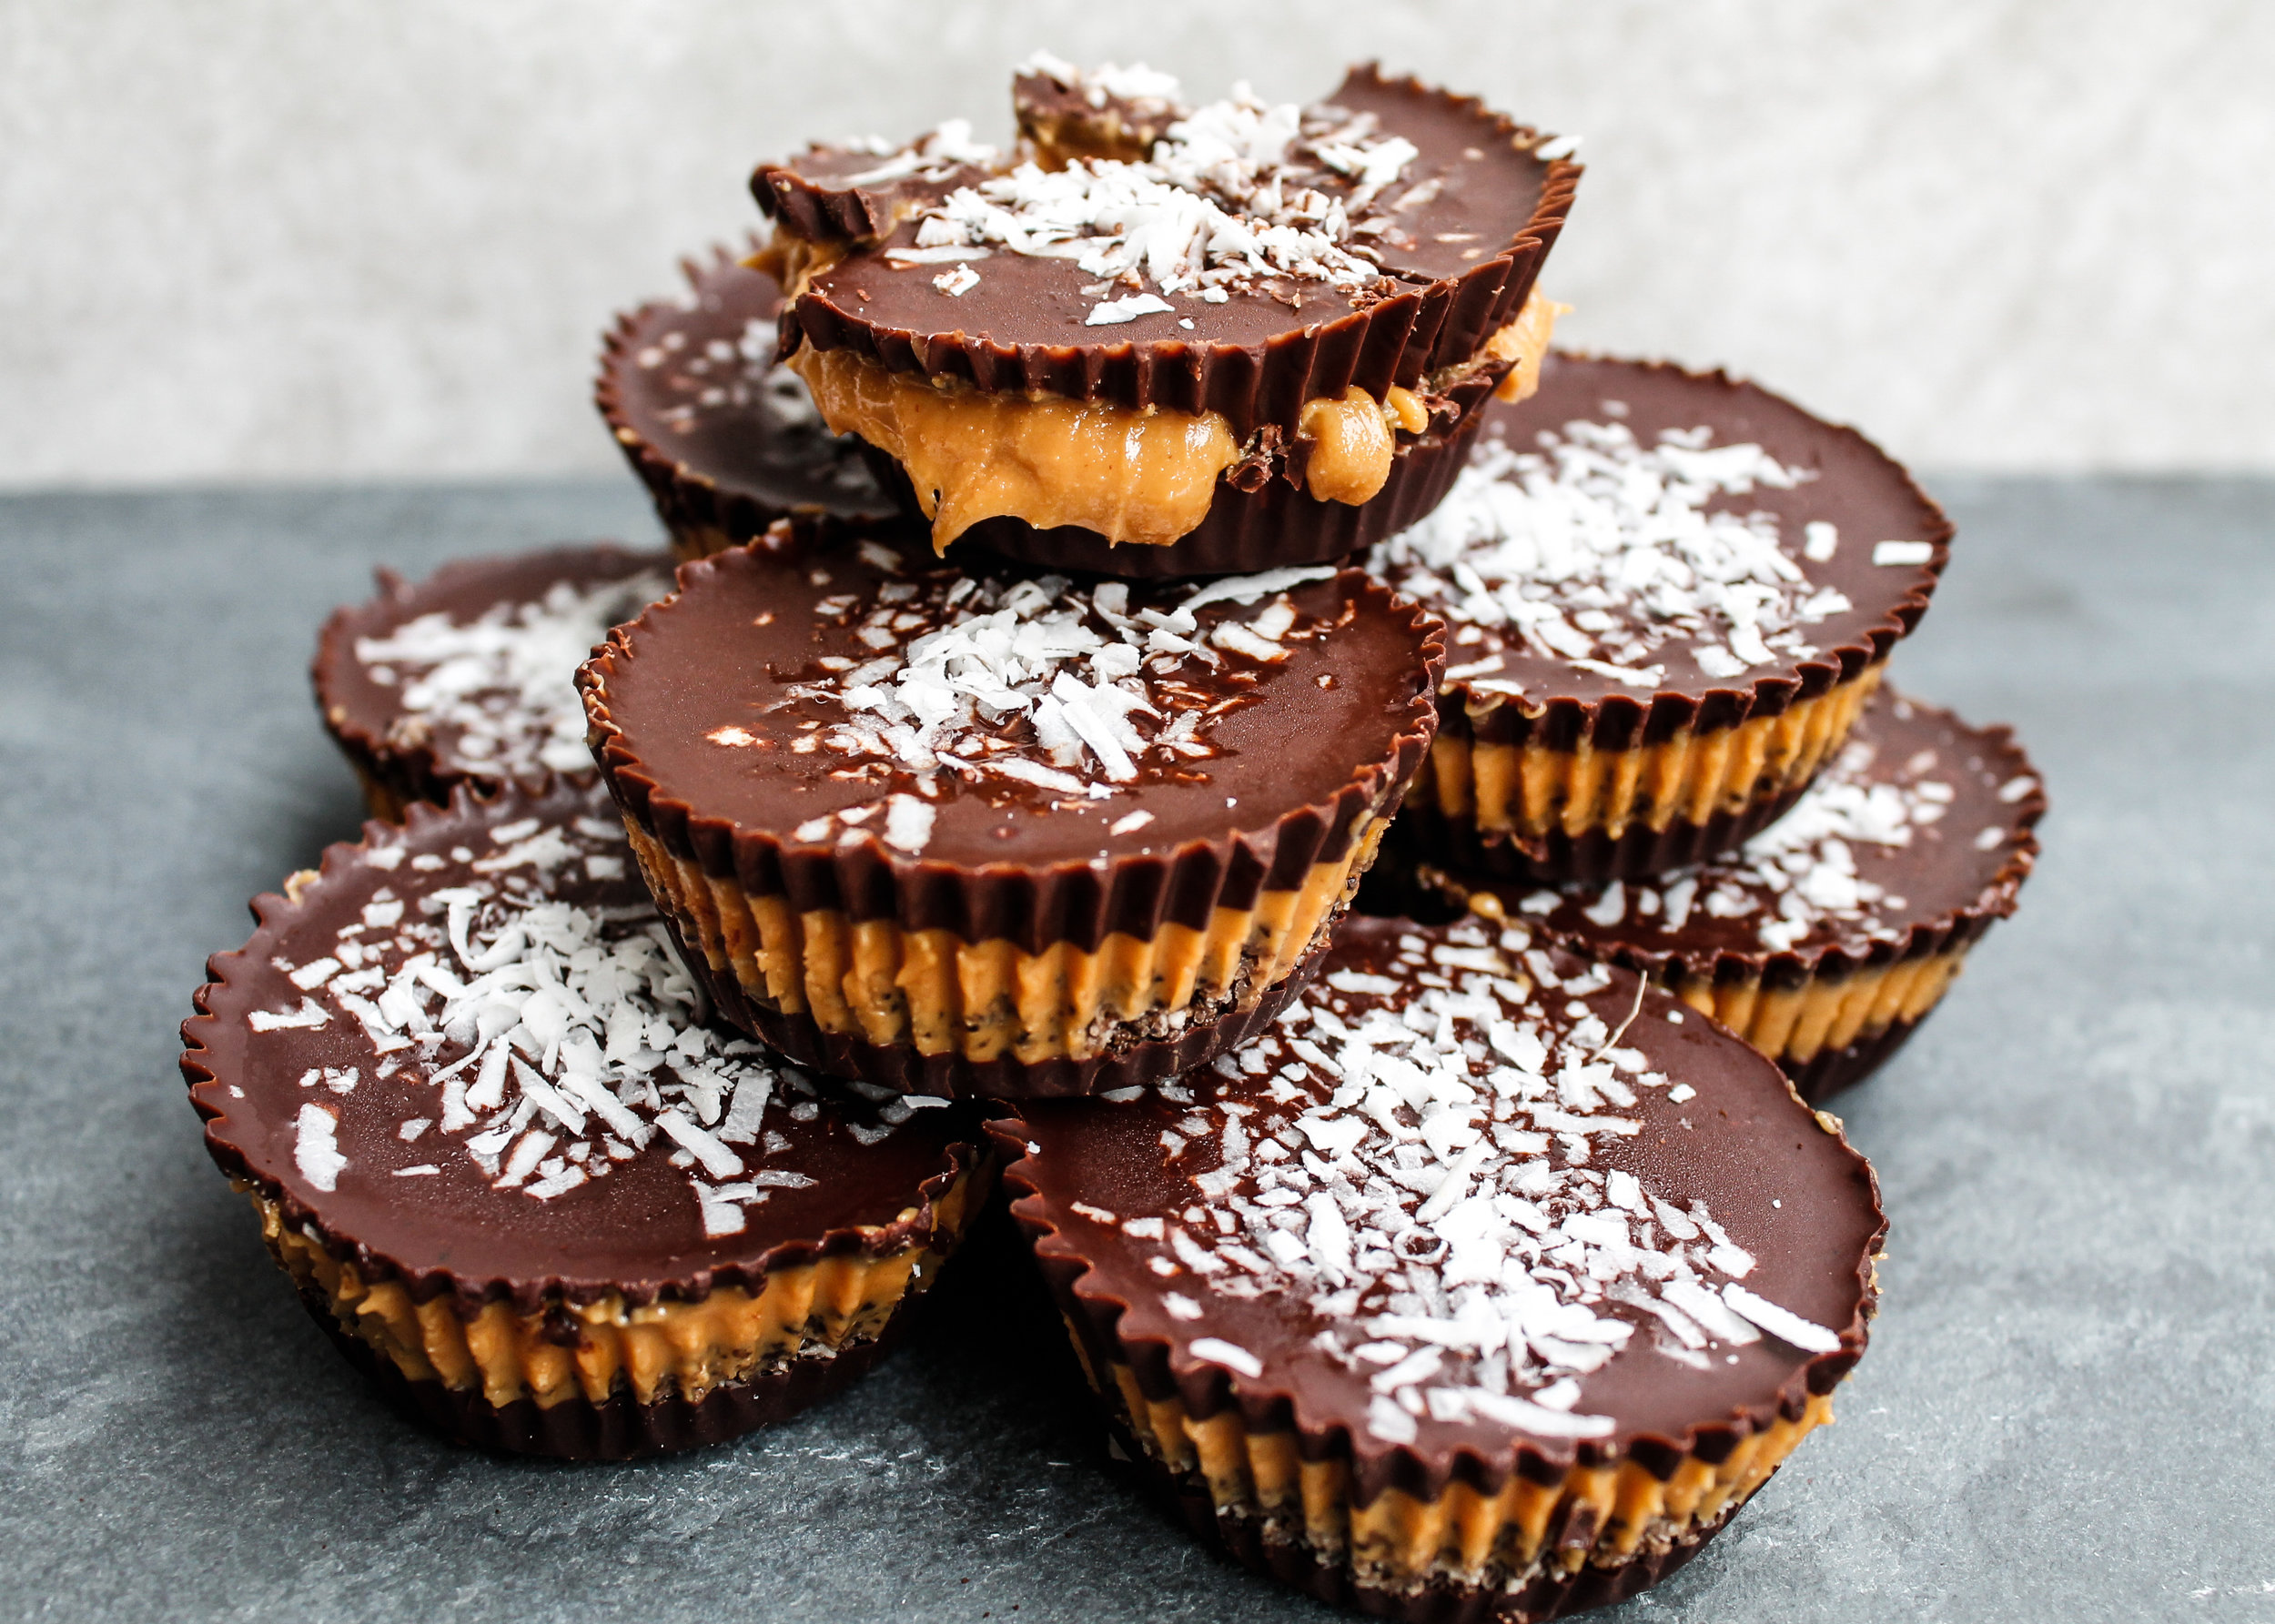 These Coconut Coffee Nut Butter Cups are the perfect healthy Valentine's Day treat to show yourself and your loved ones how much you care! They're paleo, dairy free, gluten free AND refined sugar free, making them a perfect healthy alternative for dessert or a midday sweet treat. A quick and healthy dessert recipe to satisfy your sweet tooth! #healthydessert #vegan